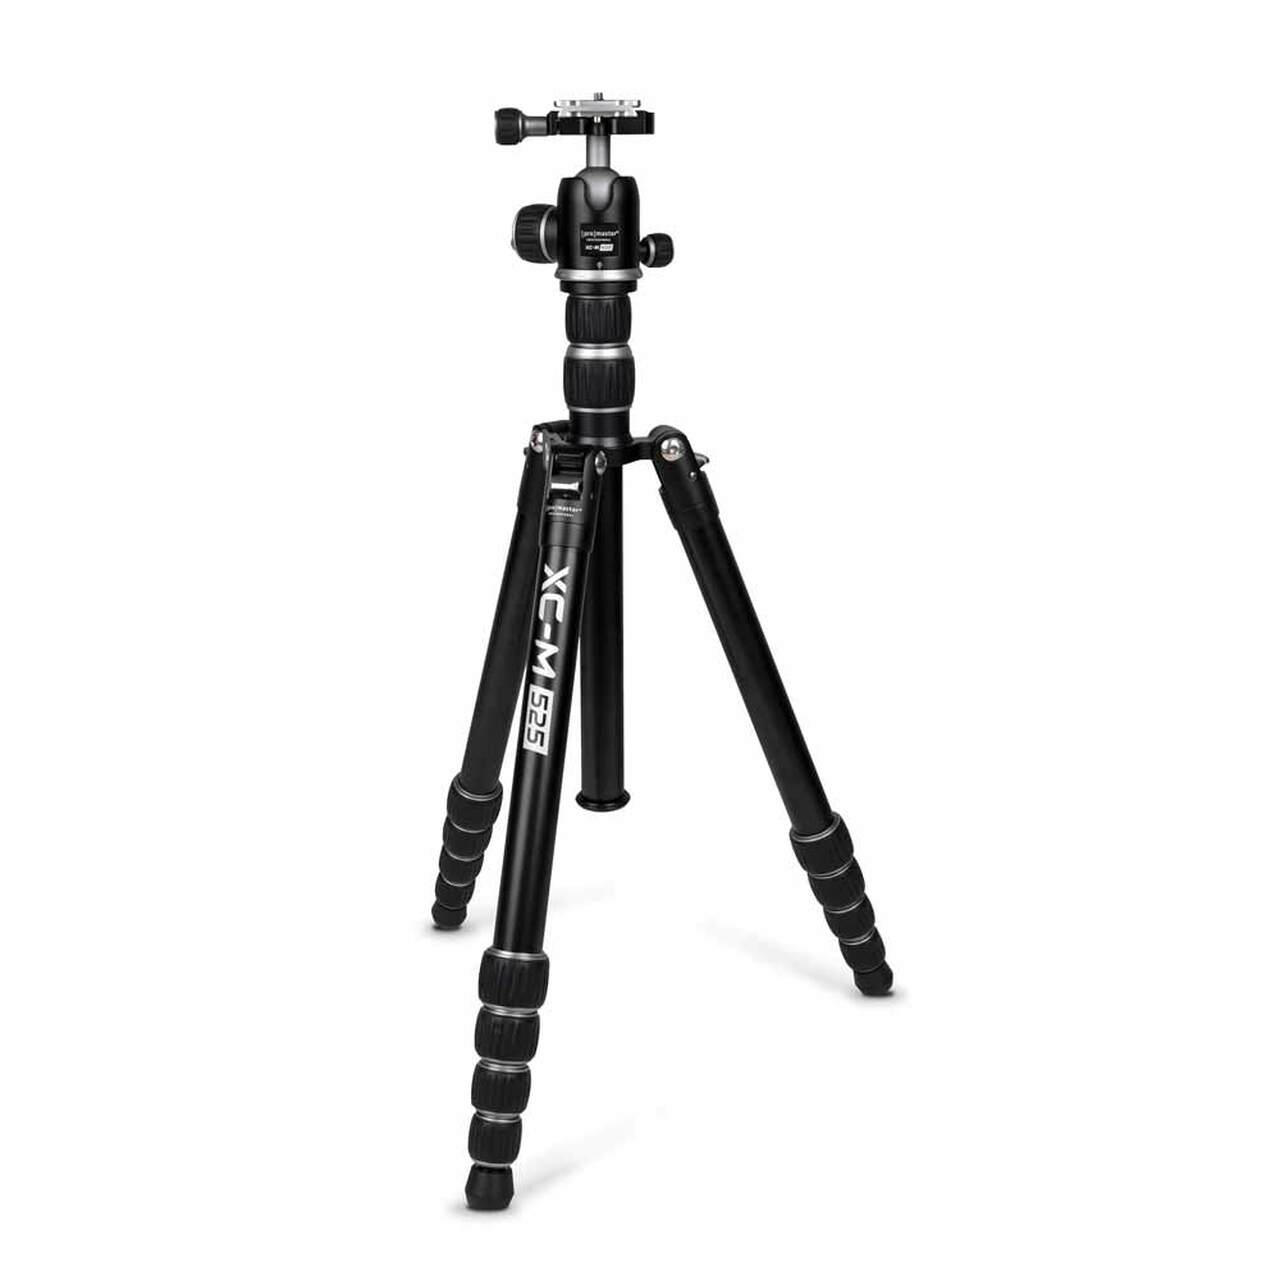 Promaster 3454  XC-M 525K Professional Tripod (Silver) - Kit with Ball Head